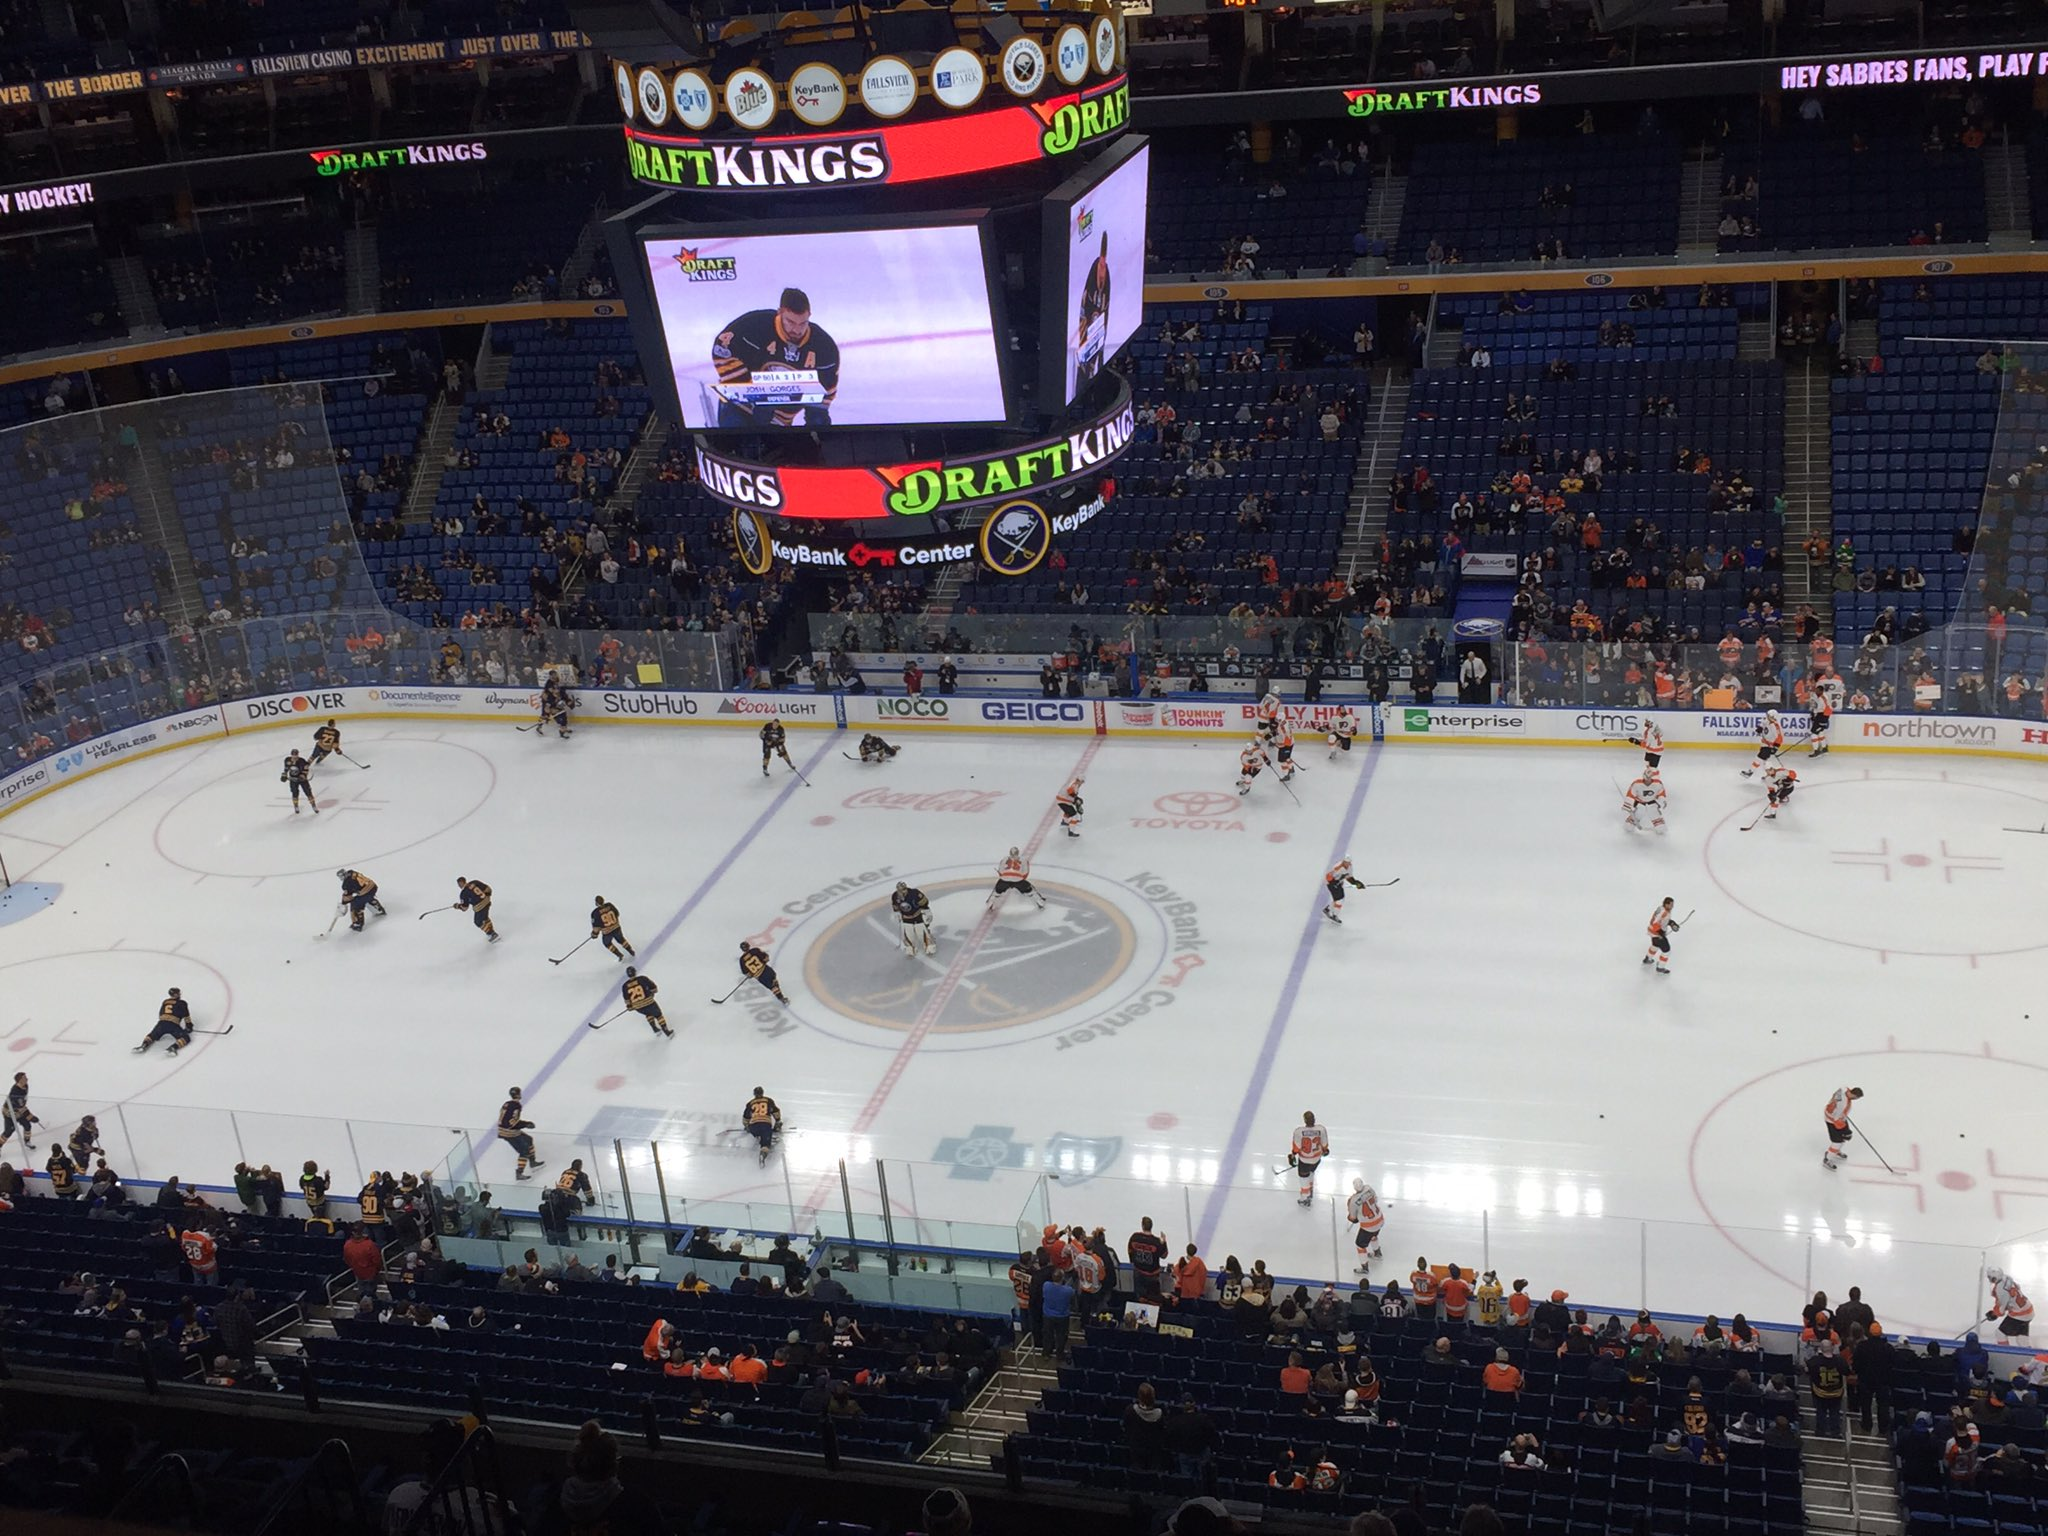 The Sabres face the Flyers tonight at home. (Mike Harrington/Buffalo News)